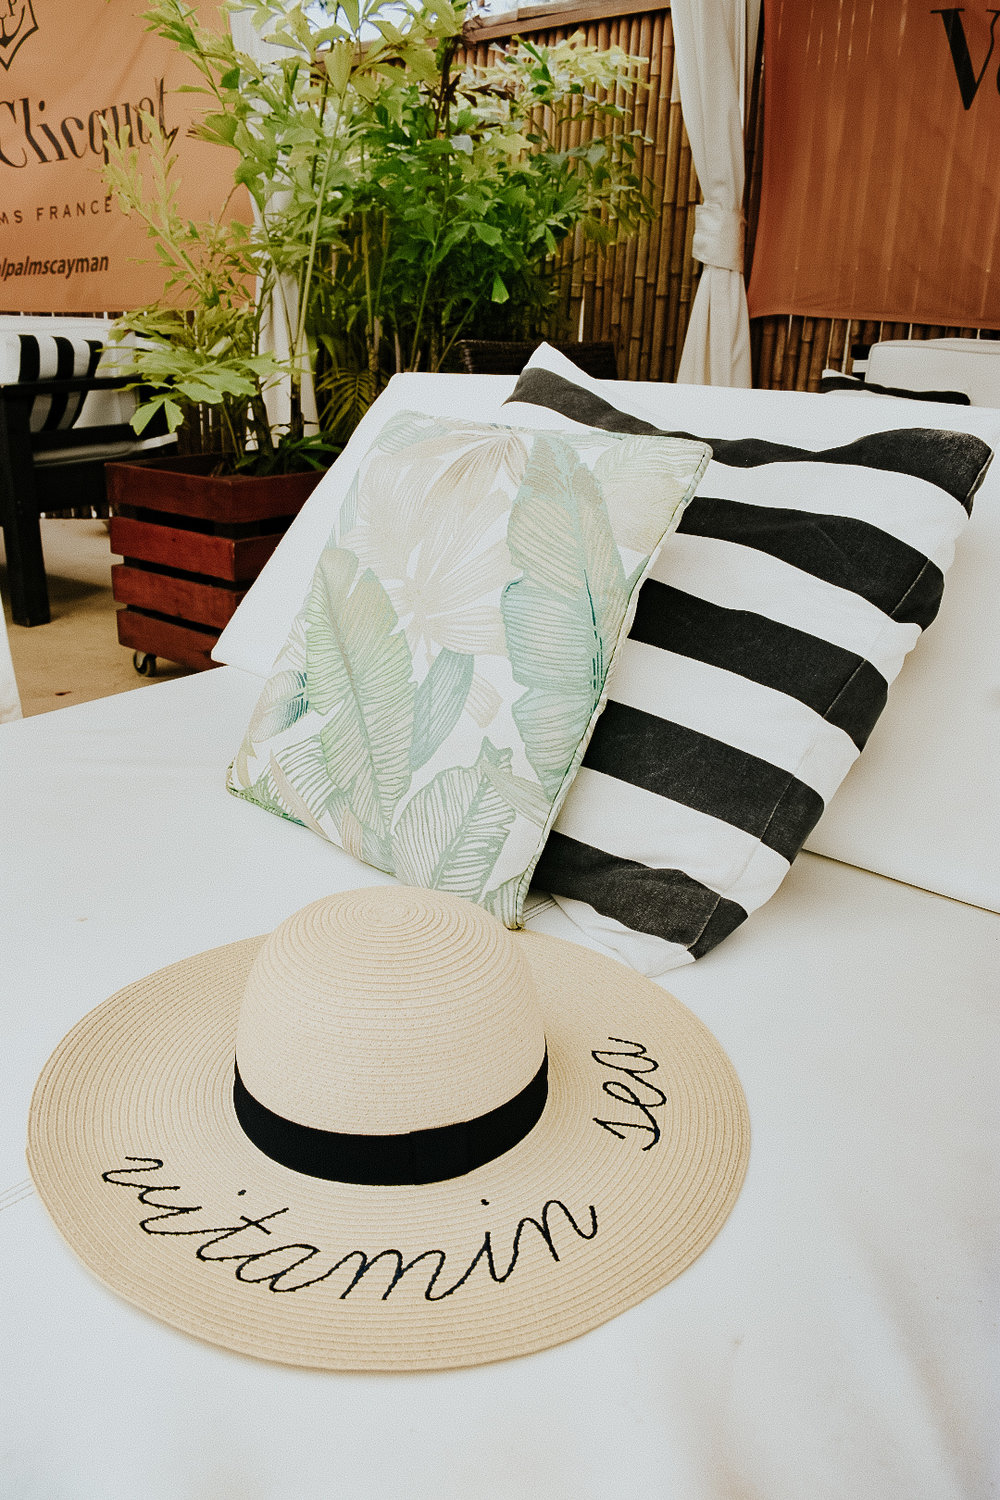 Our cabana at the Royal Palms Beach Club (J Crew hat not included)